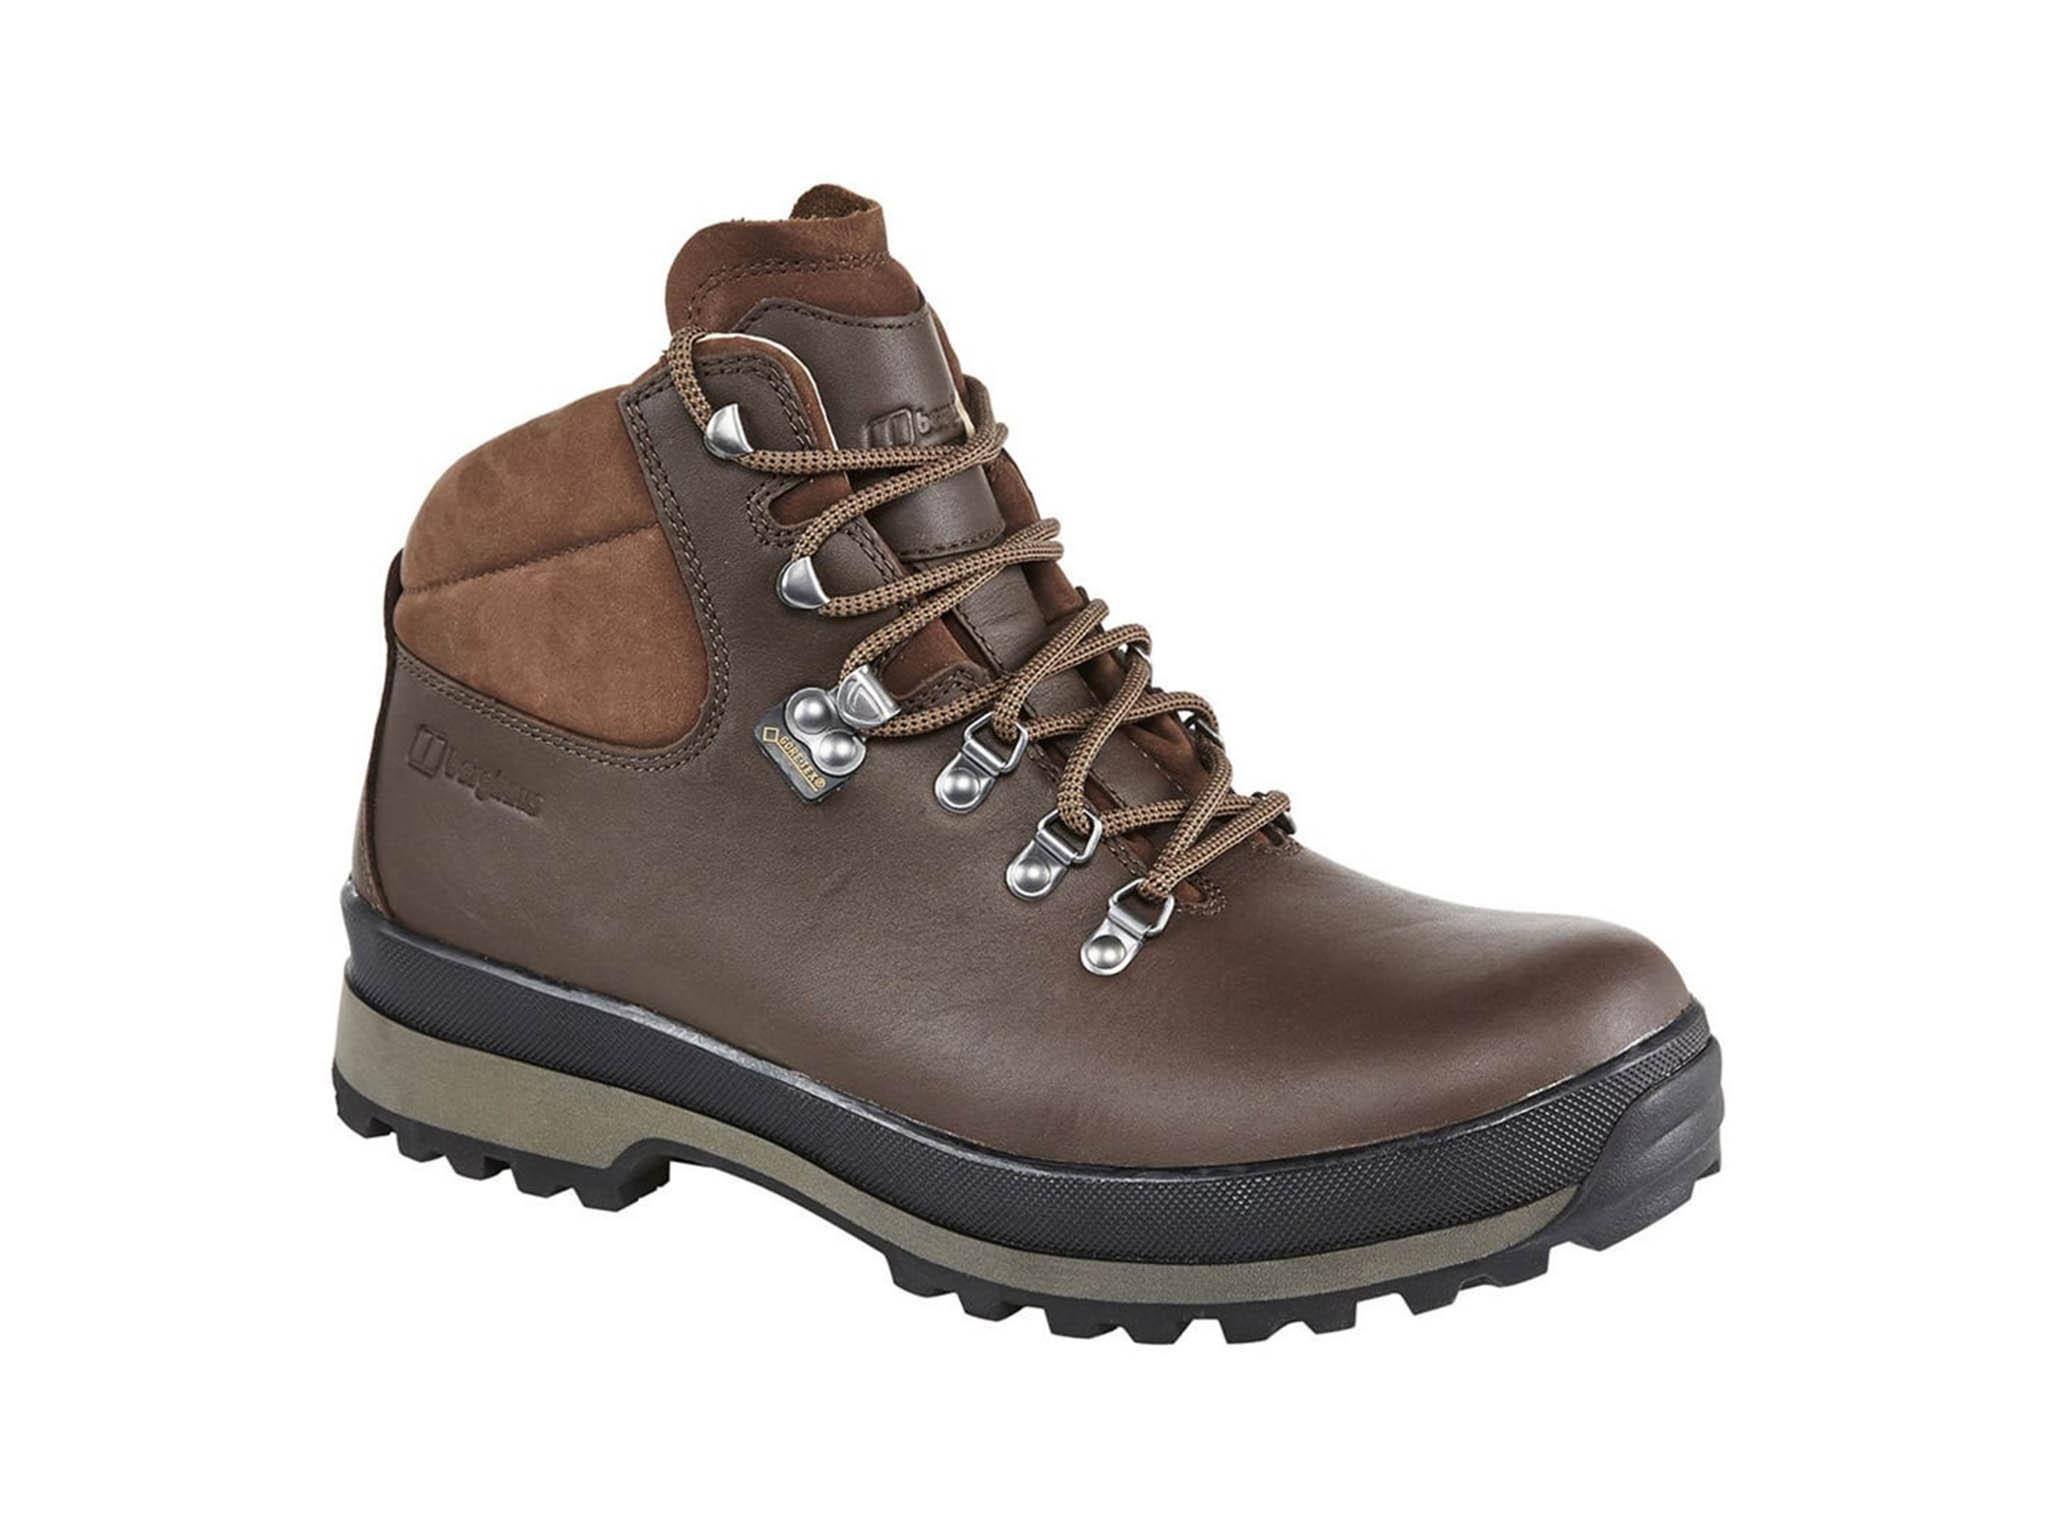 f8996398ab90a Best men's hiking boots and shoes